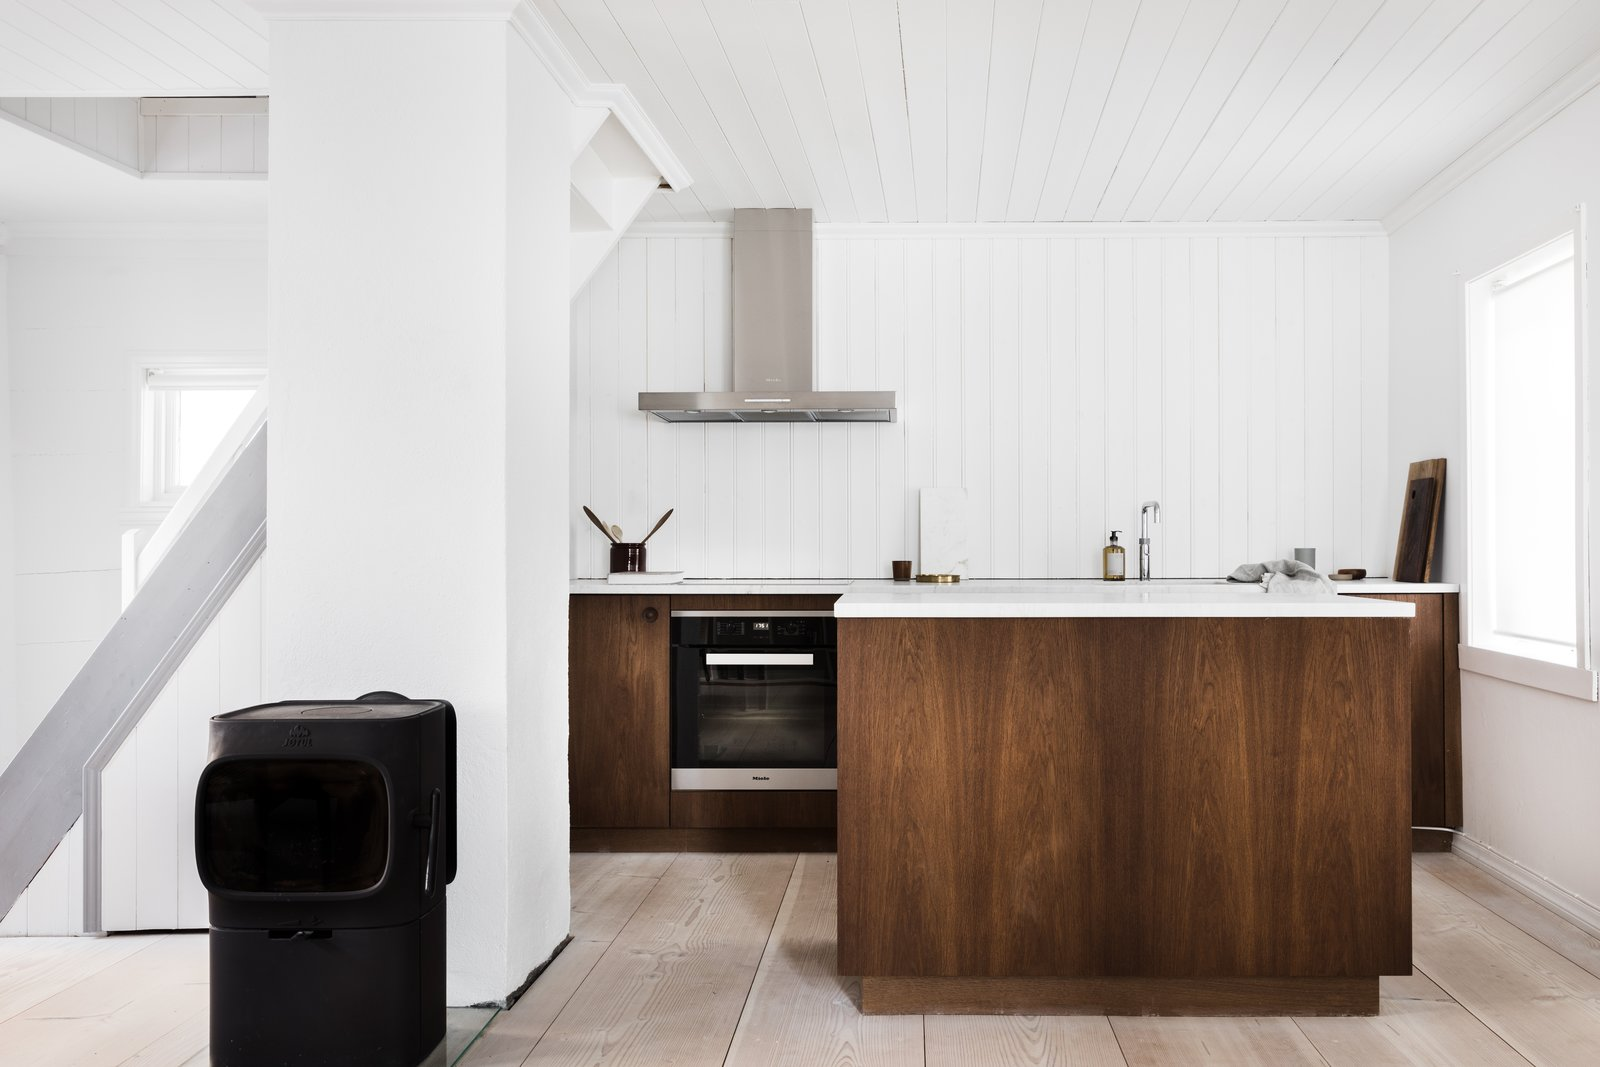 Kitchen, Light Hardwood Floor, Wood Backsplashe, Wood Cabinet, Wall Oven, and Range Hood The custom-designed kitchen worktops and cabinetry were hand crafted by Copenhagen furniture makers Møbelsnekkeriet.  Photo 4 of 12 in An 18th-Century Townhouse Is Now a Chic Norwegian Rental